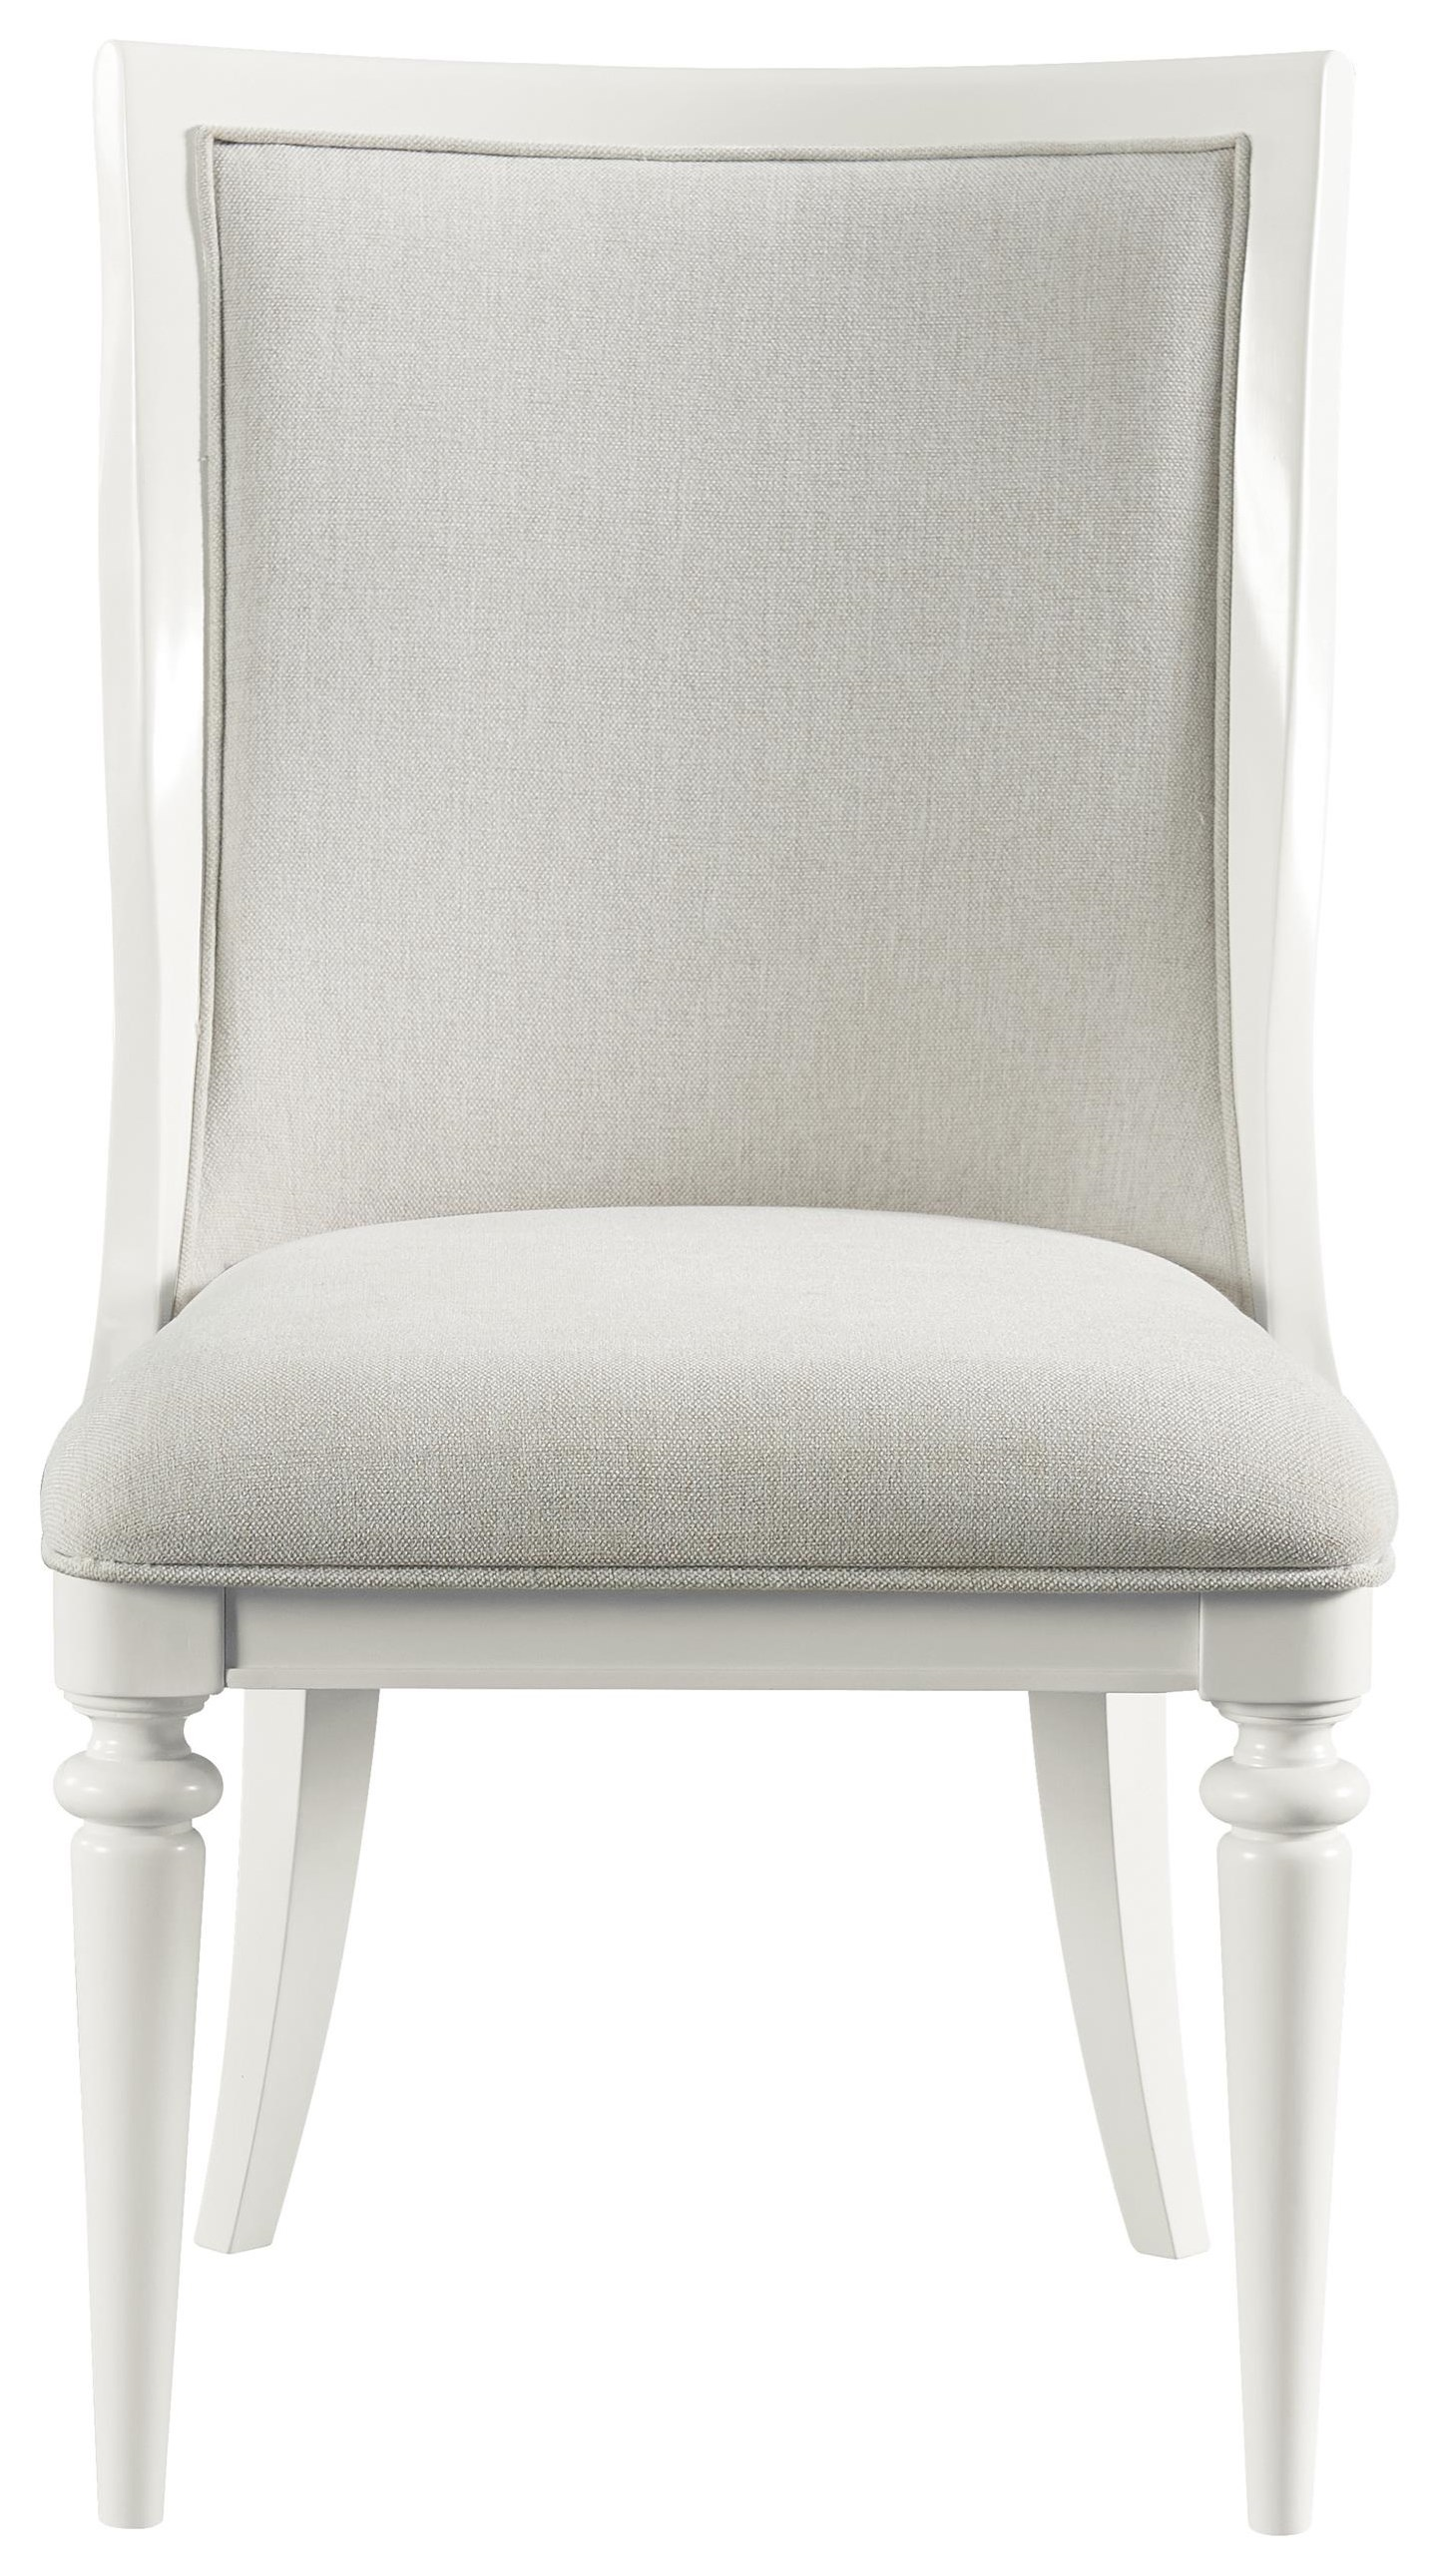 Harbortown Seagrass Dining Chair by Stillwater Furniture at Baer's Furniture